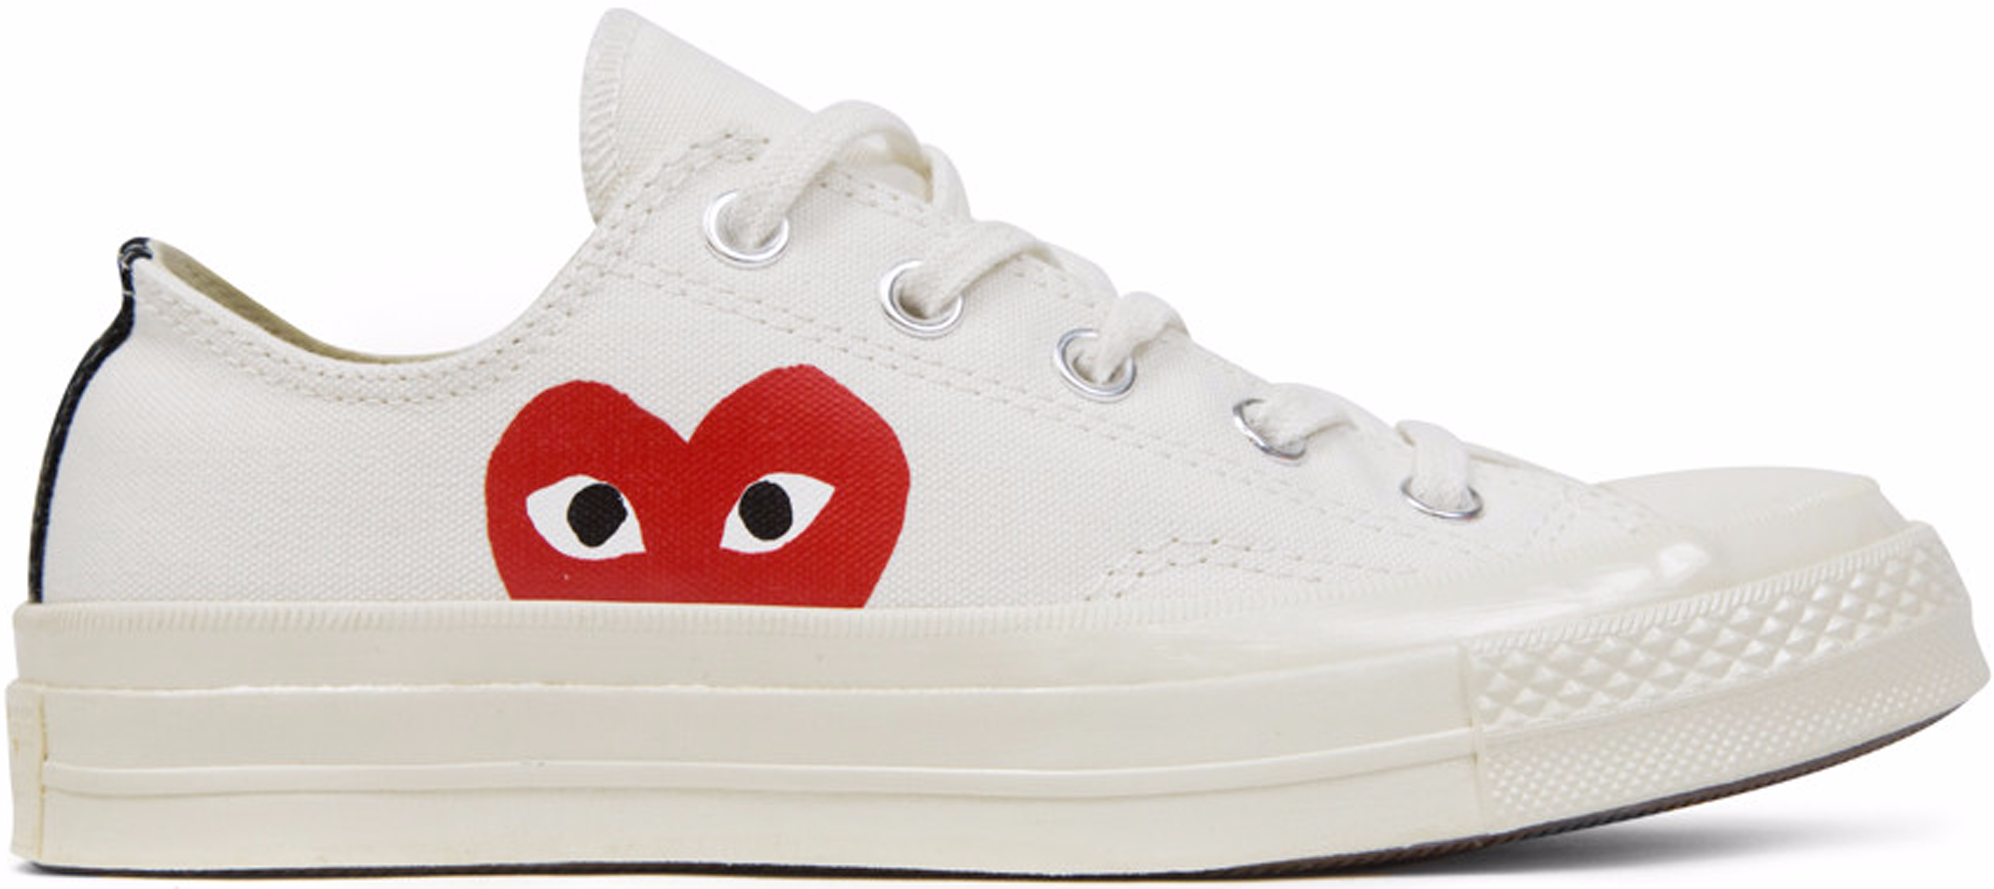 converse all star white. converse chuck taylor all-star 70s ox comme des garcons play white all star